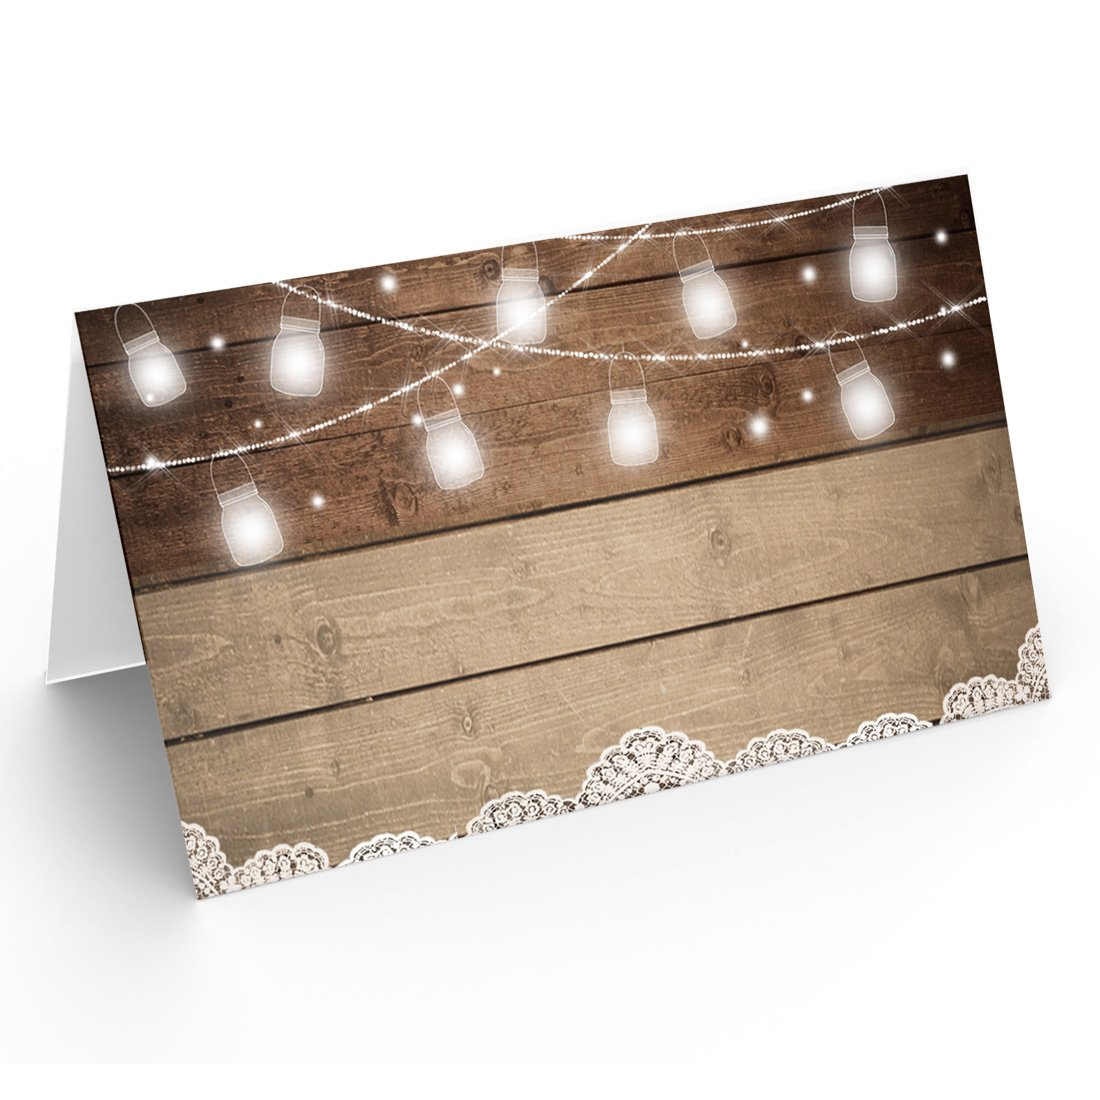 25 Table Place Cards | Rustic Wood | Perfect for Weddings, Holidays, Dinner Parties, Birthdays, Buffets and Catering